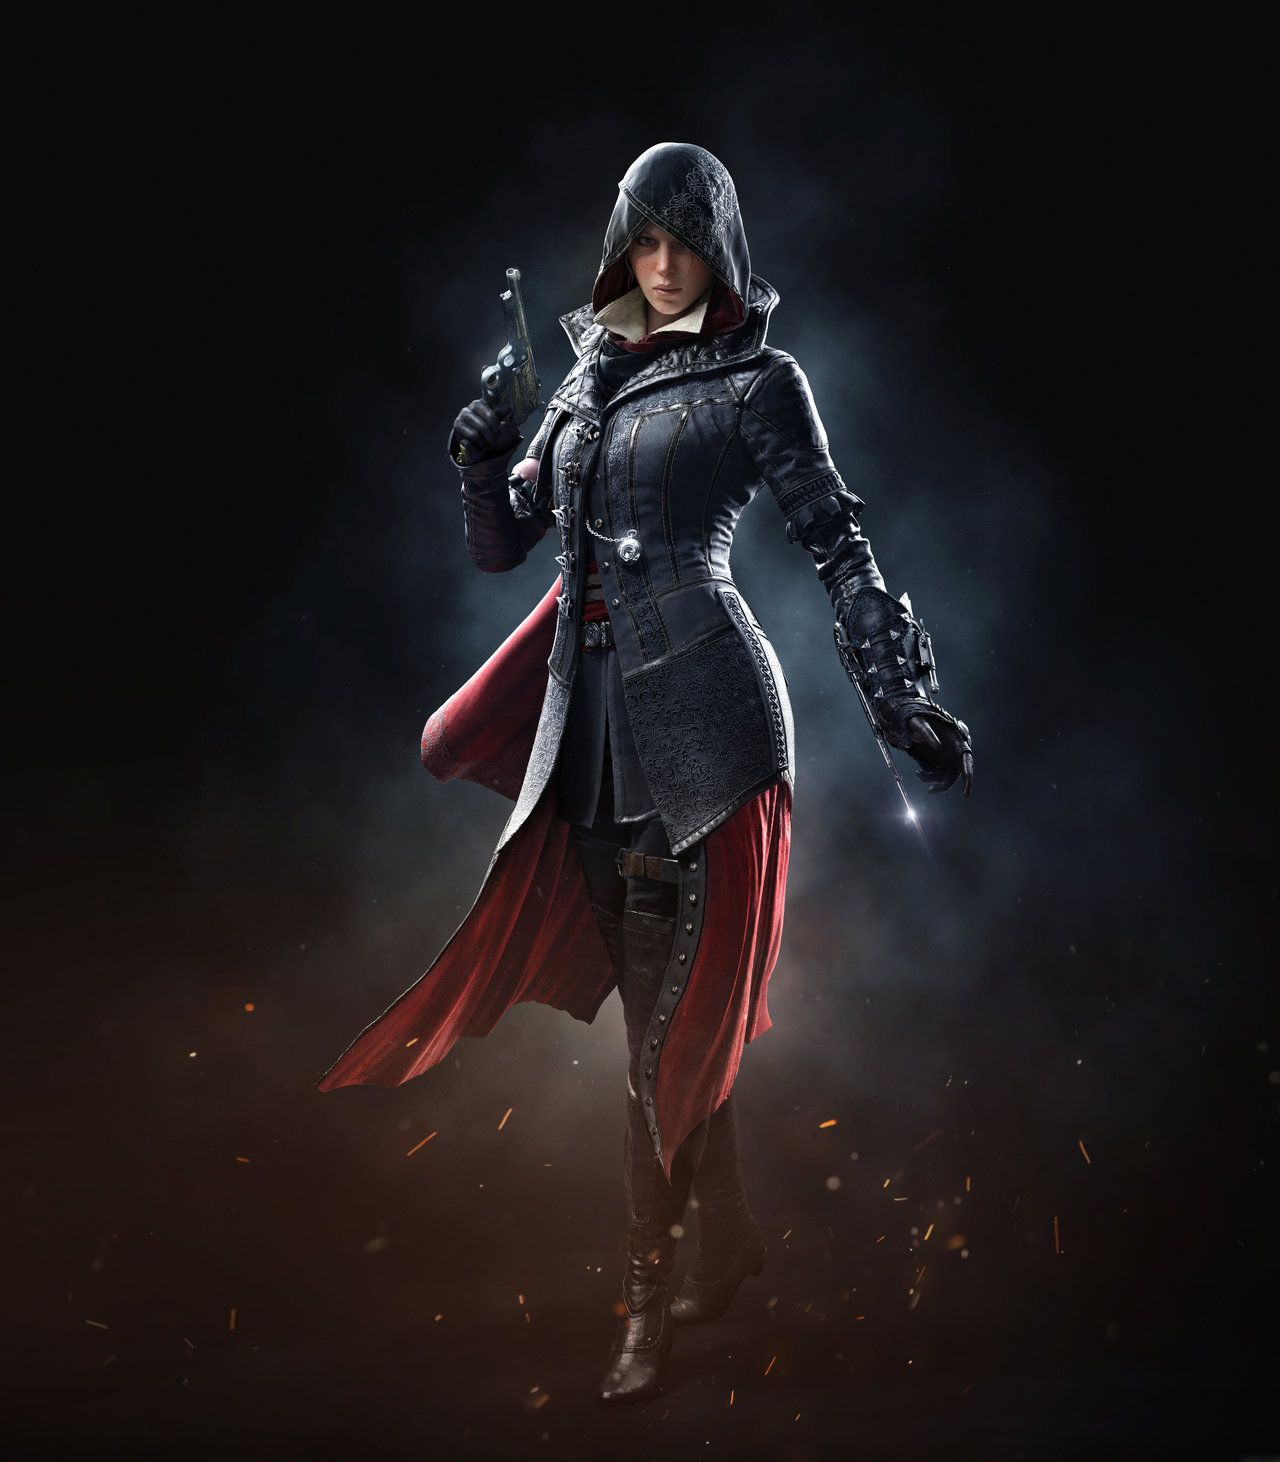 Assassin S Creed Syndicate Wallpaper Assassins Creed Syndicate Evie Assassins Creed Evie Assassins Creed